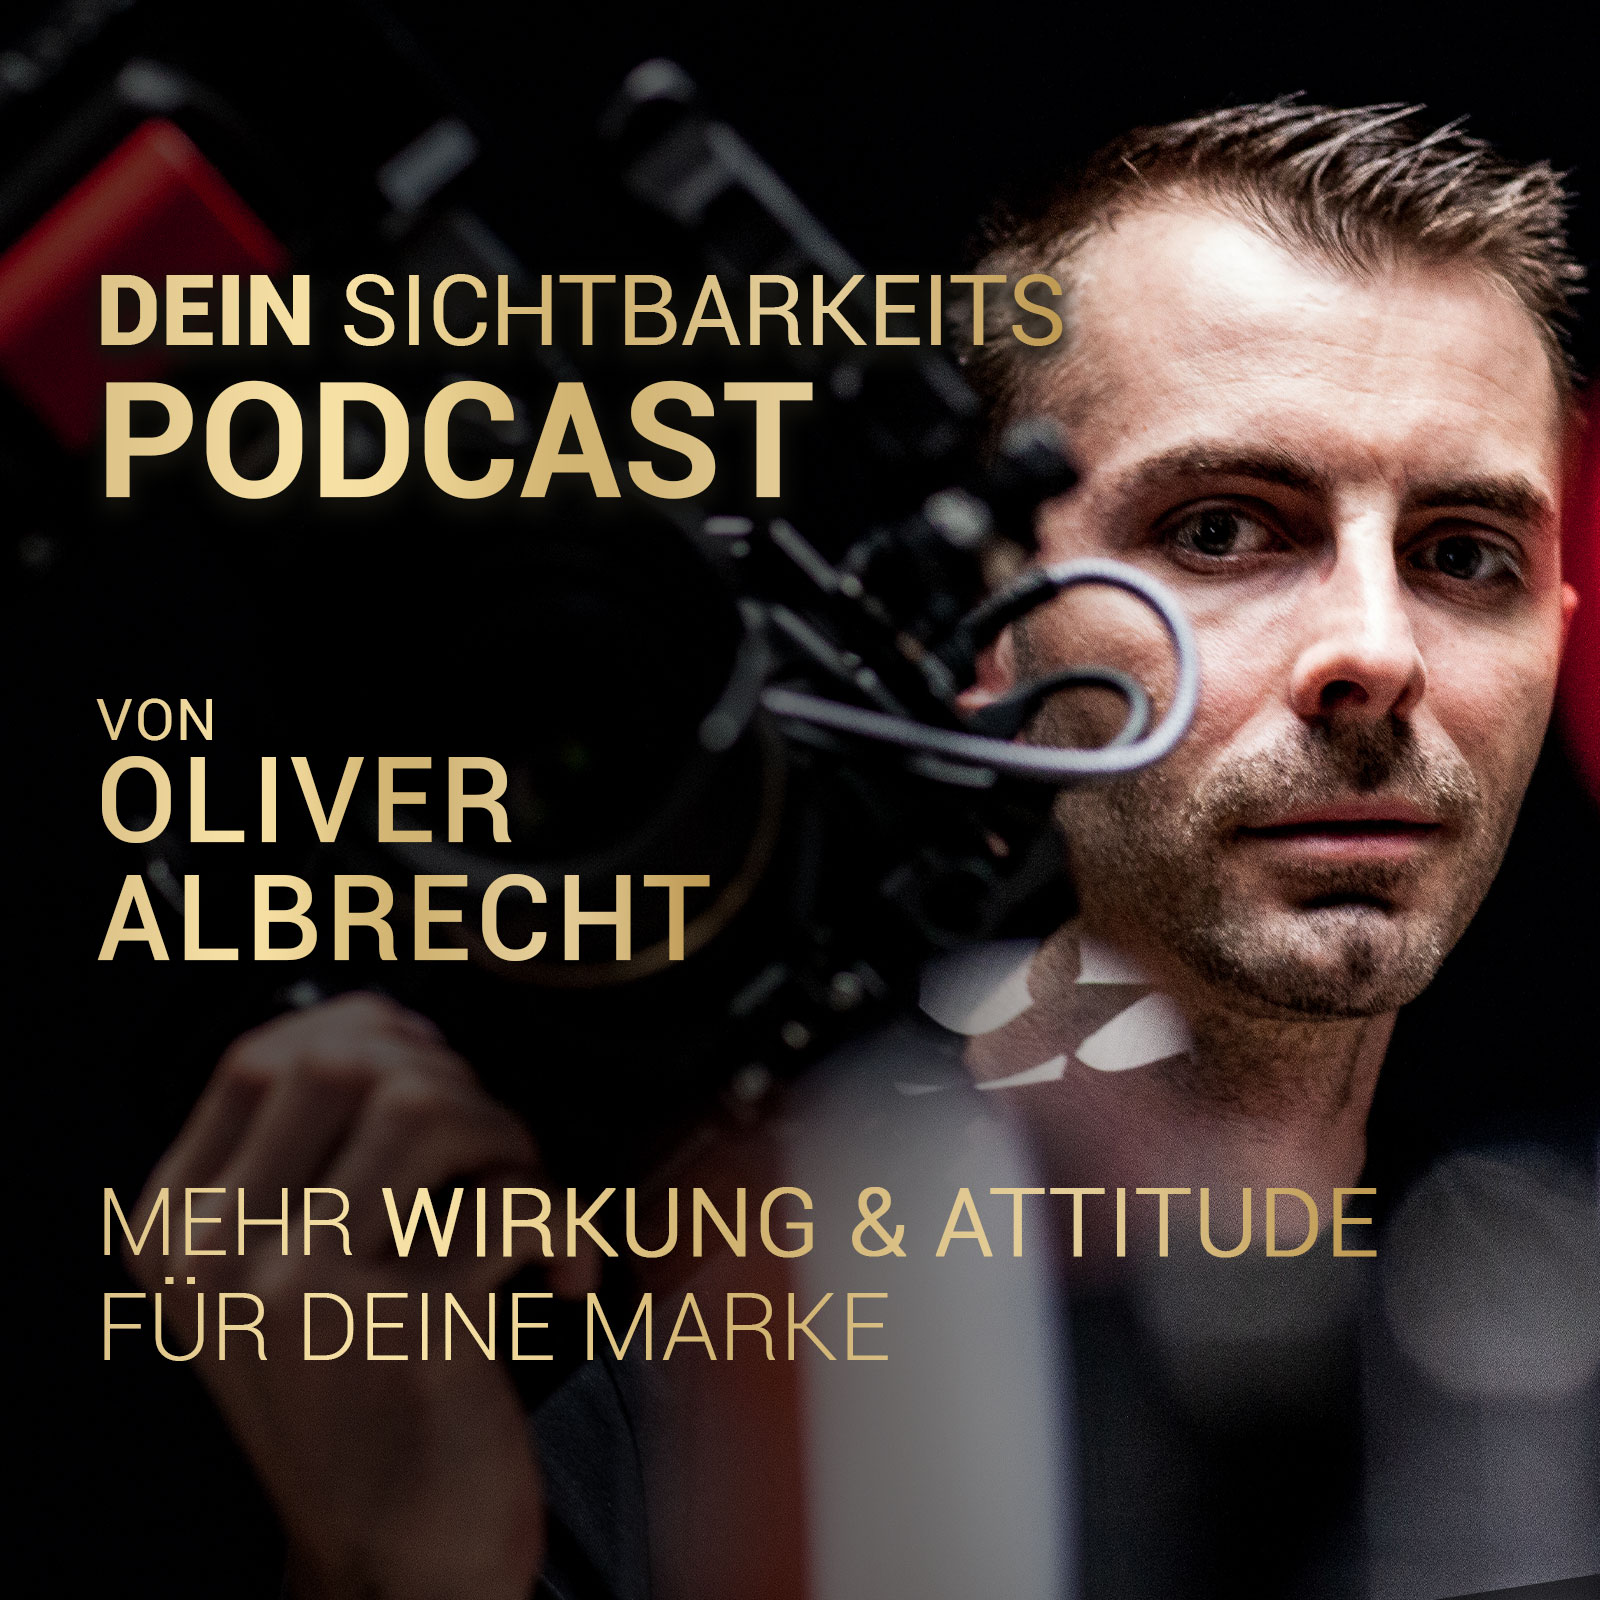 Dein Sichtbarkeits-Podcast